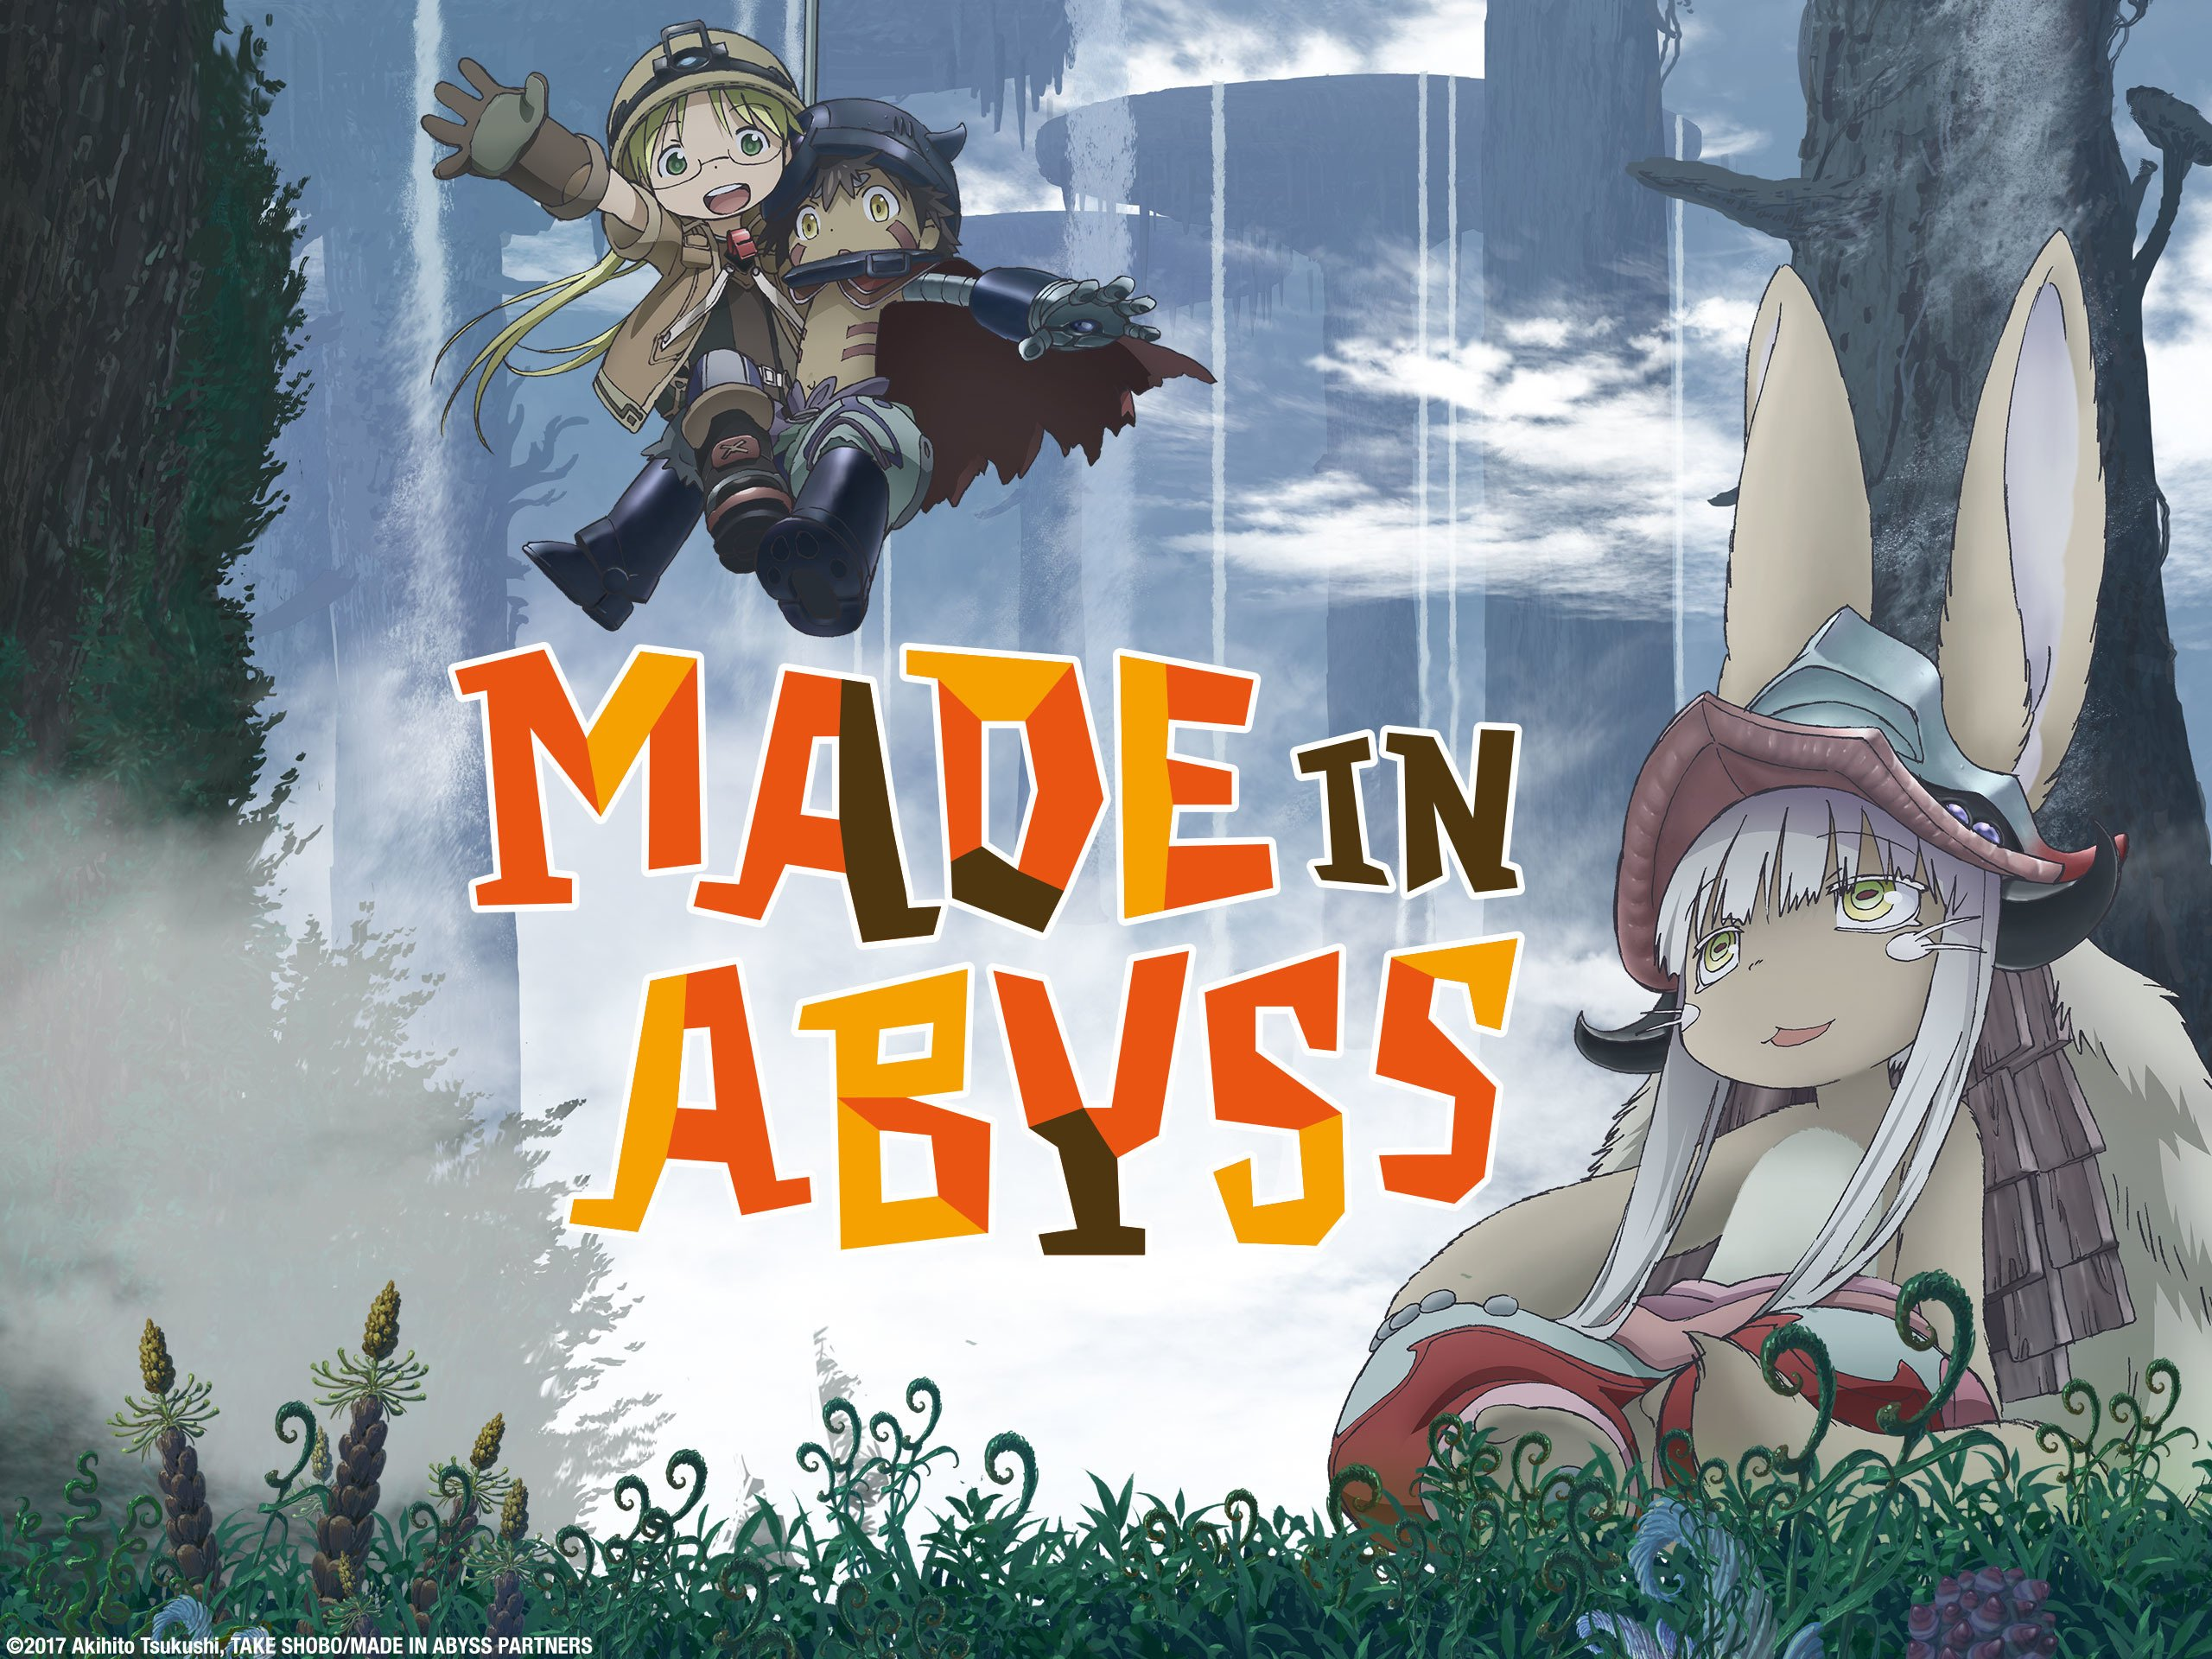 Why Is My Wallpaper Falling Off Longing For The Abyss Ramblings On Made In Abyss And Why